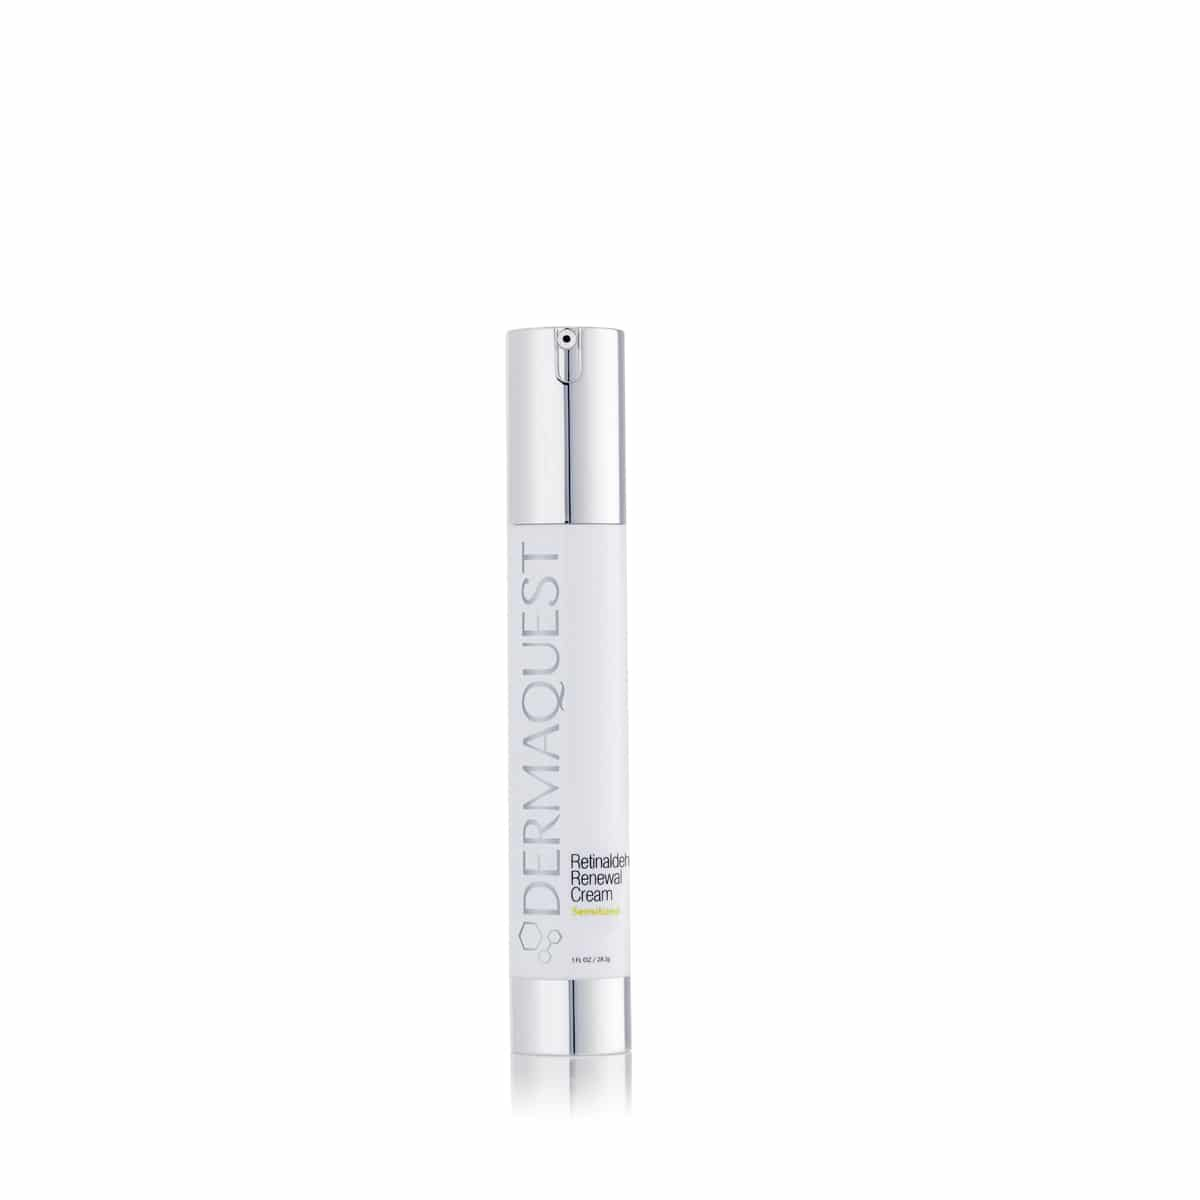 Dermaquest Retinyldehyde Renewal Cream